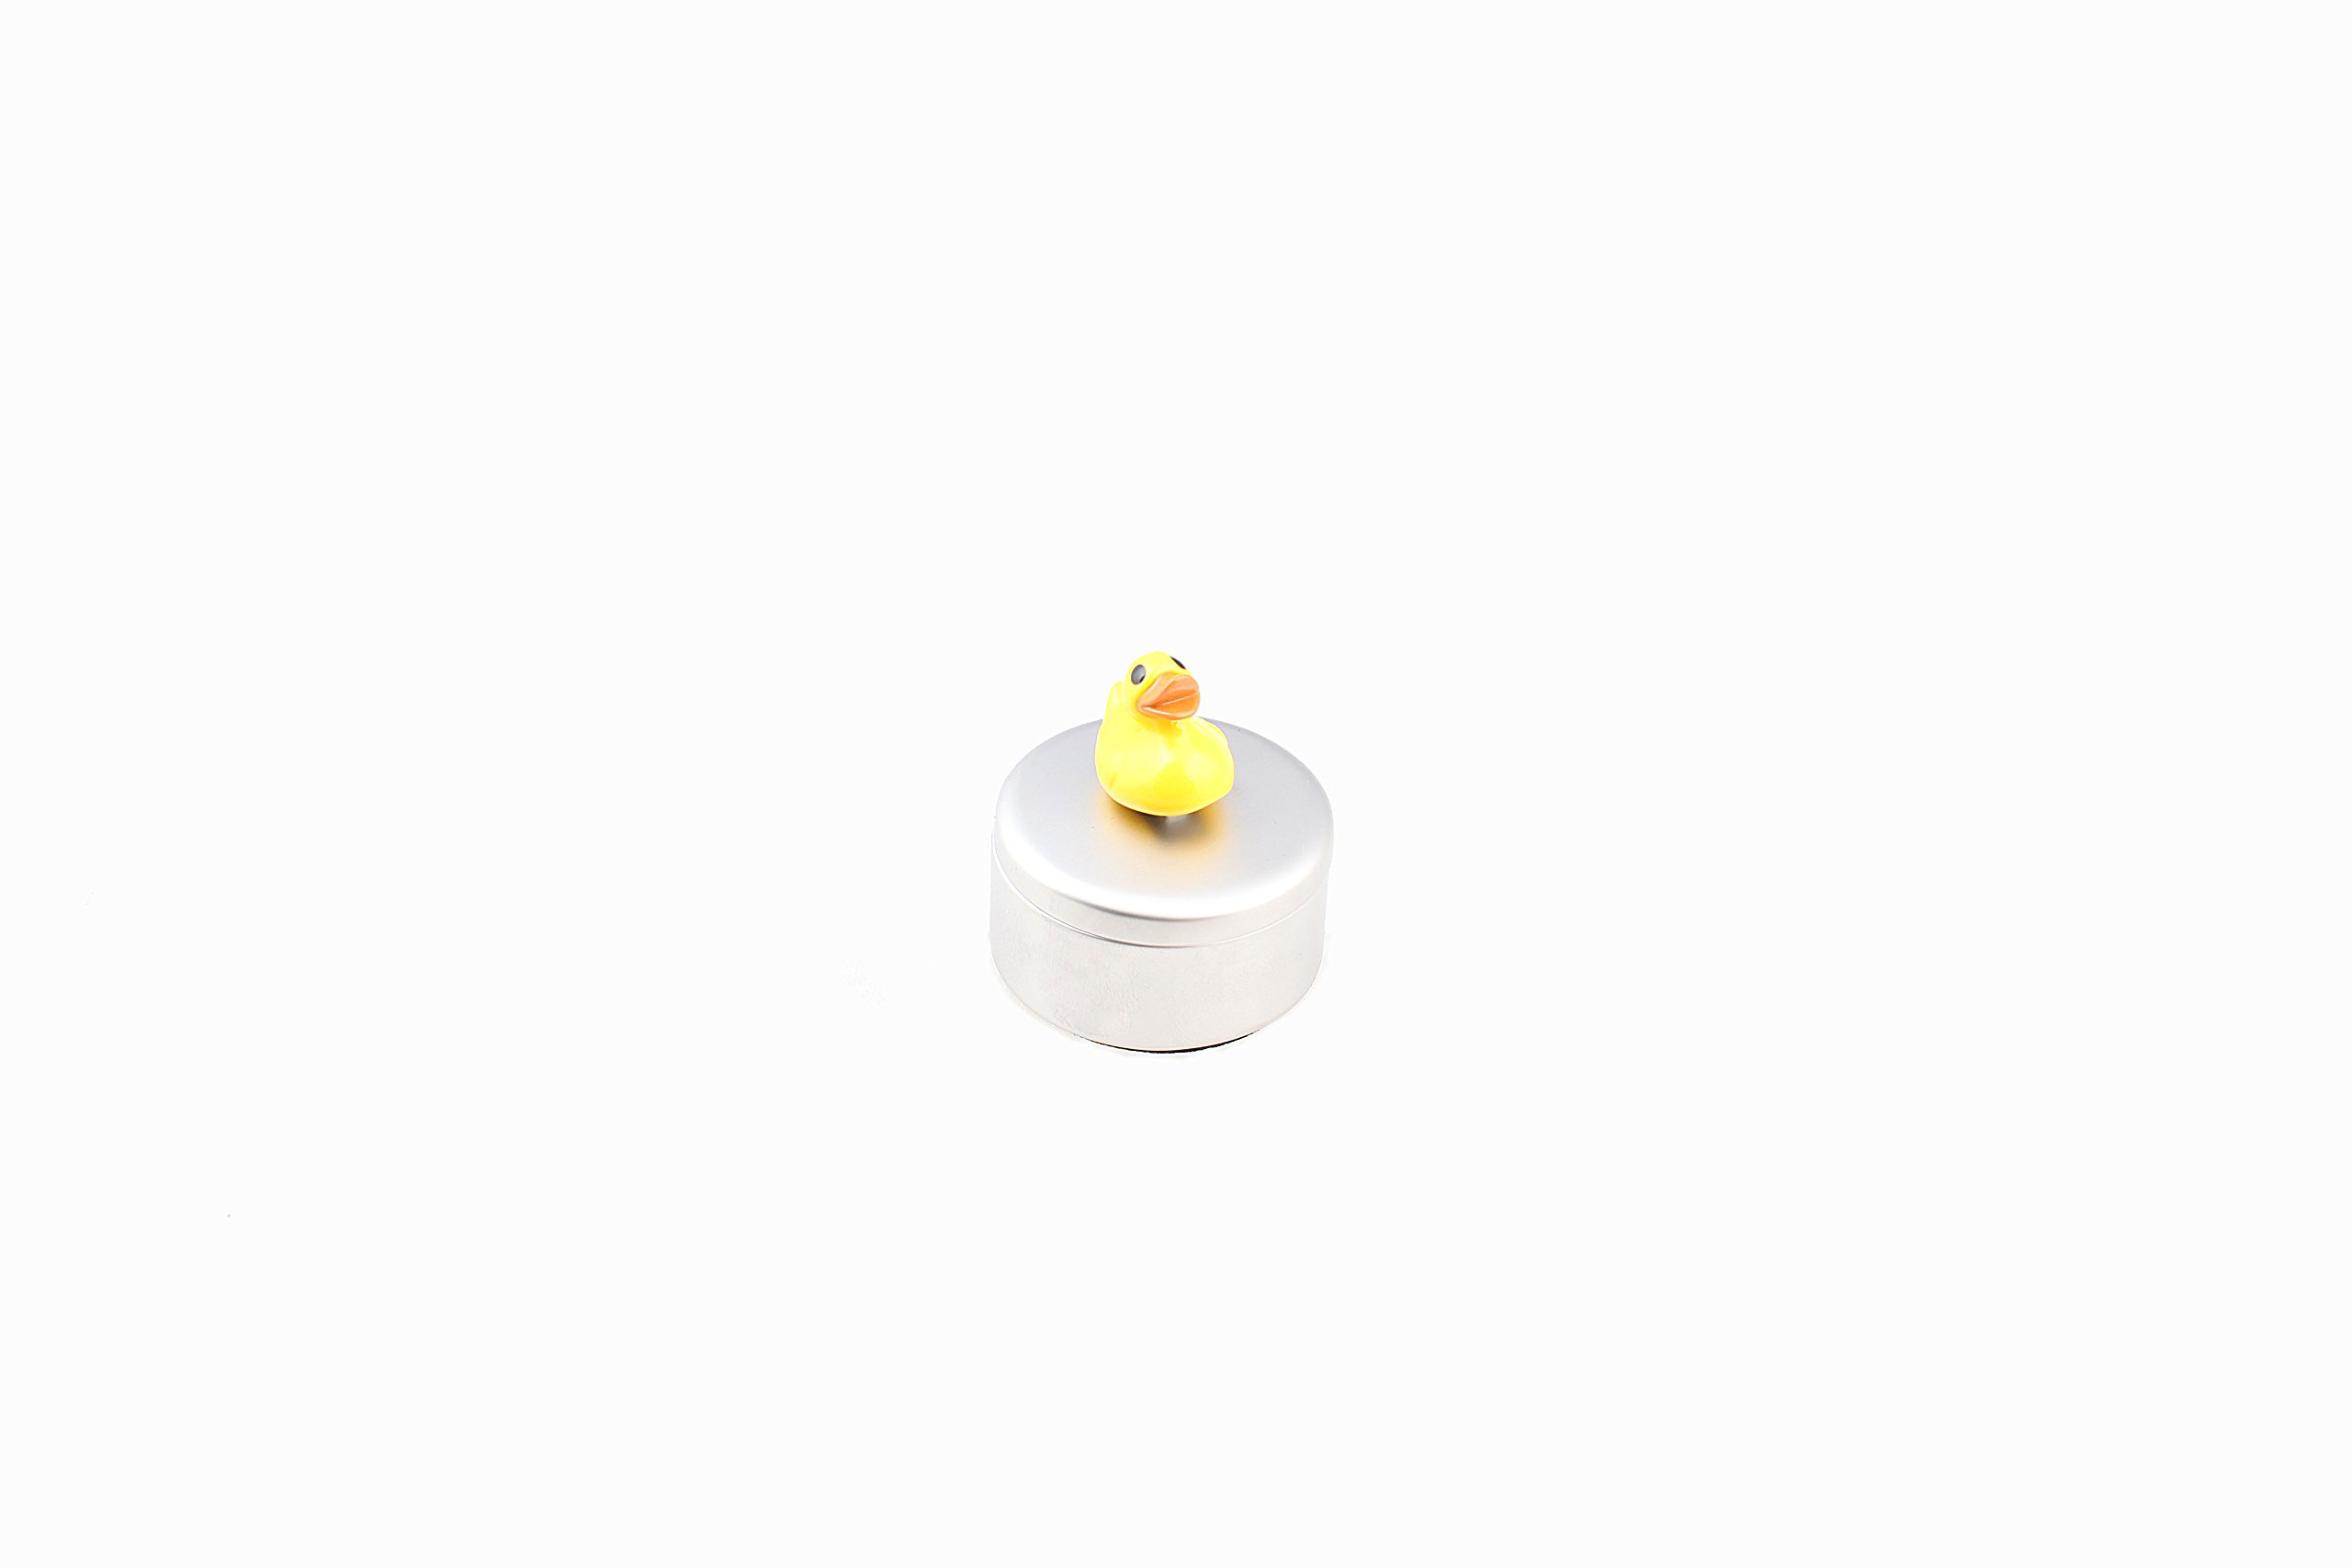 NGNG Tooth Ring Stainless Steel Box Holder Baby Teeth Storage Box - Duck by NGNG (Image #1)